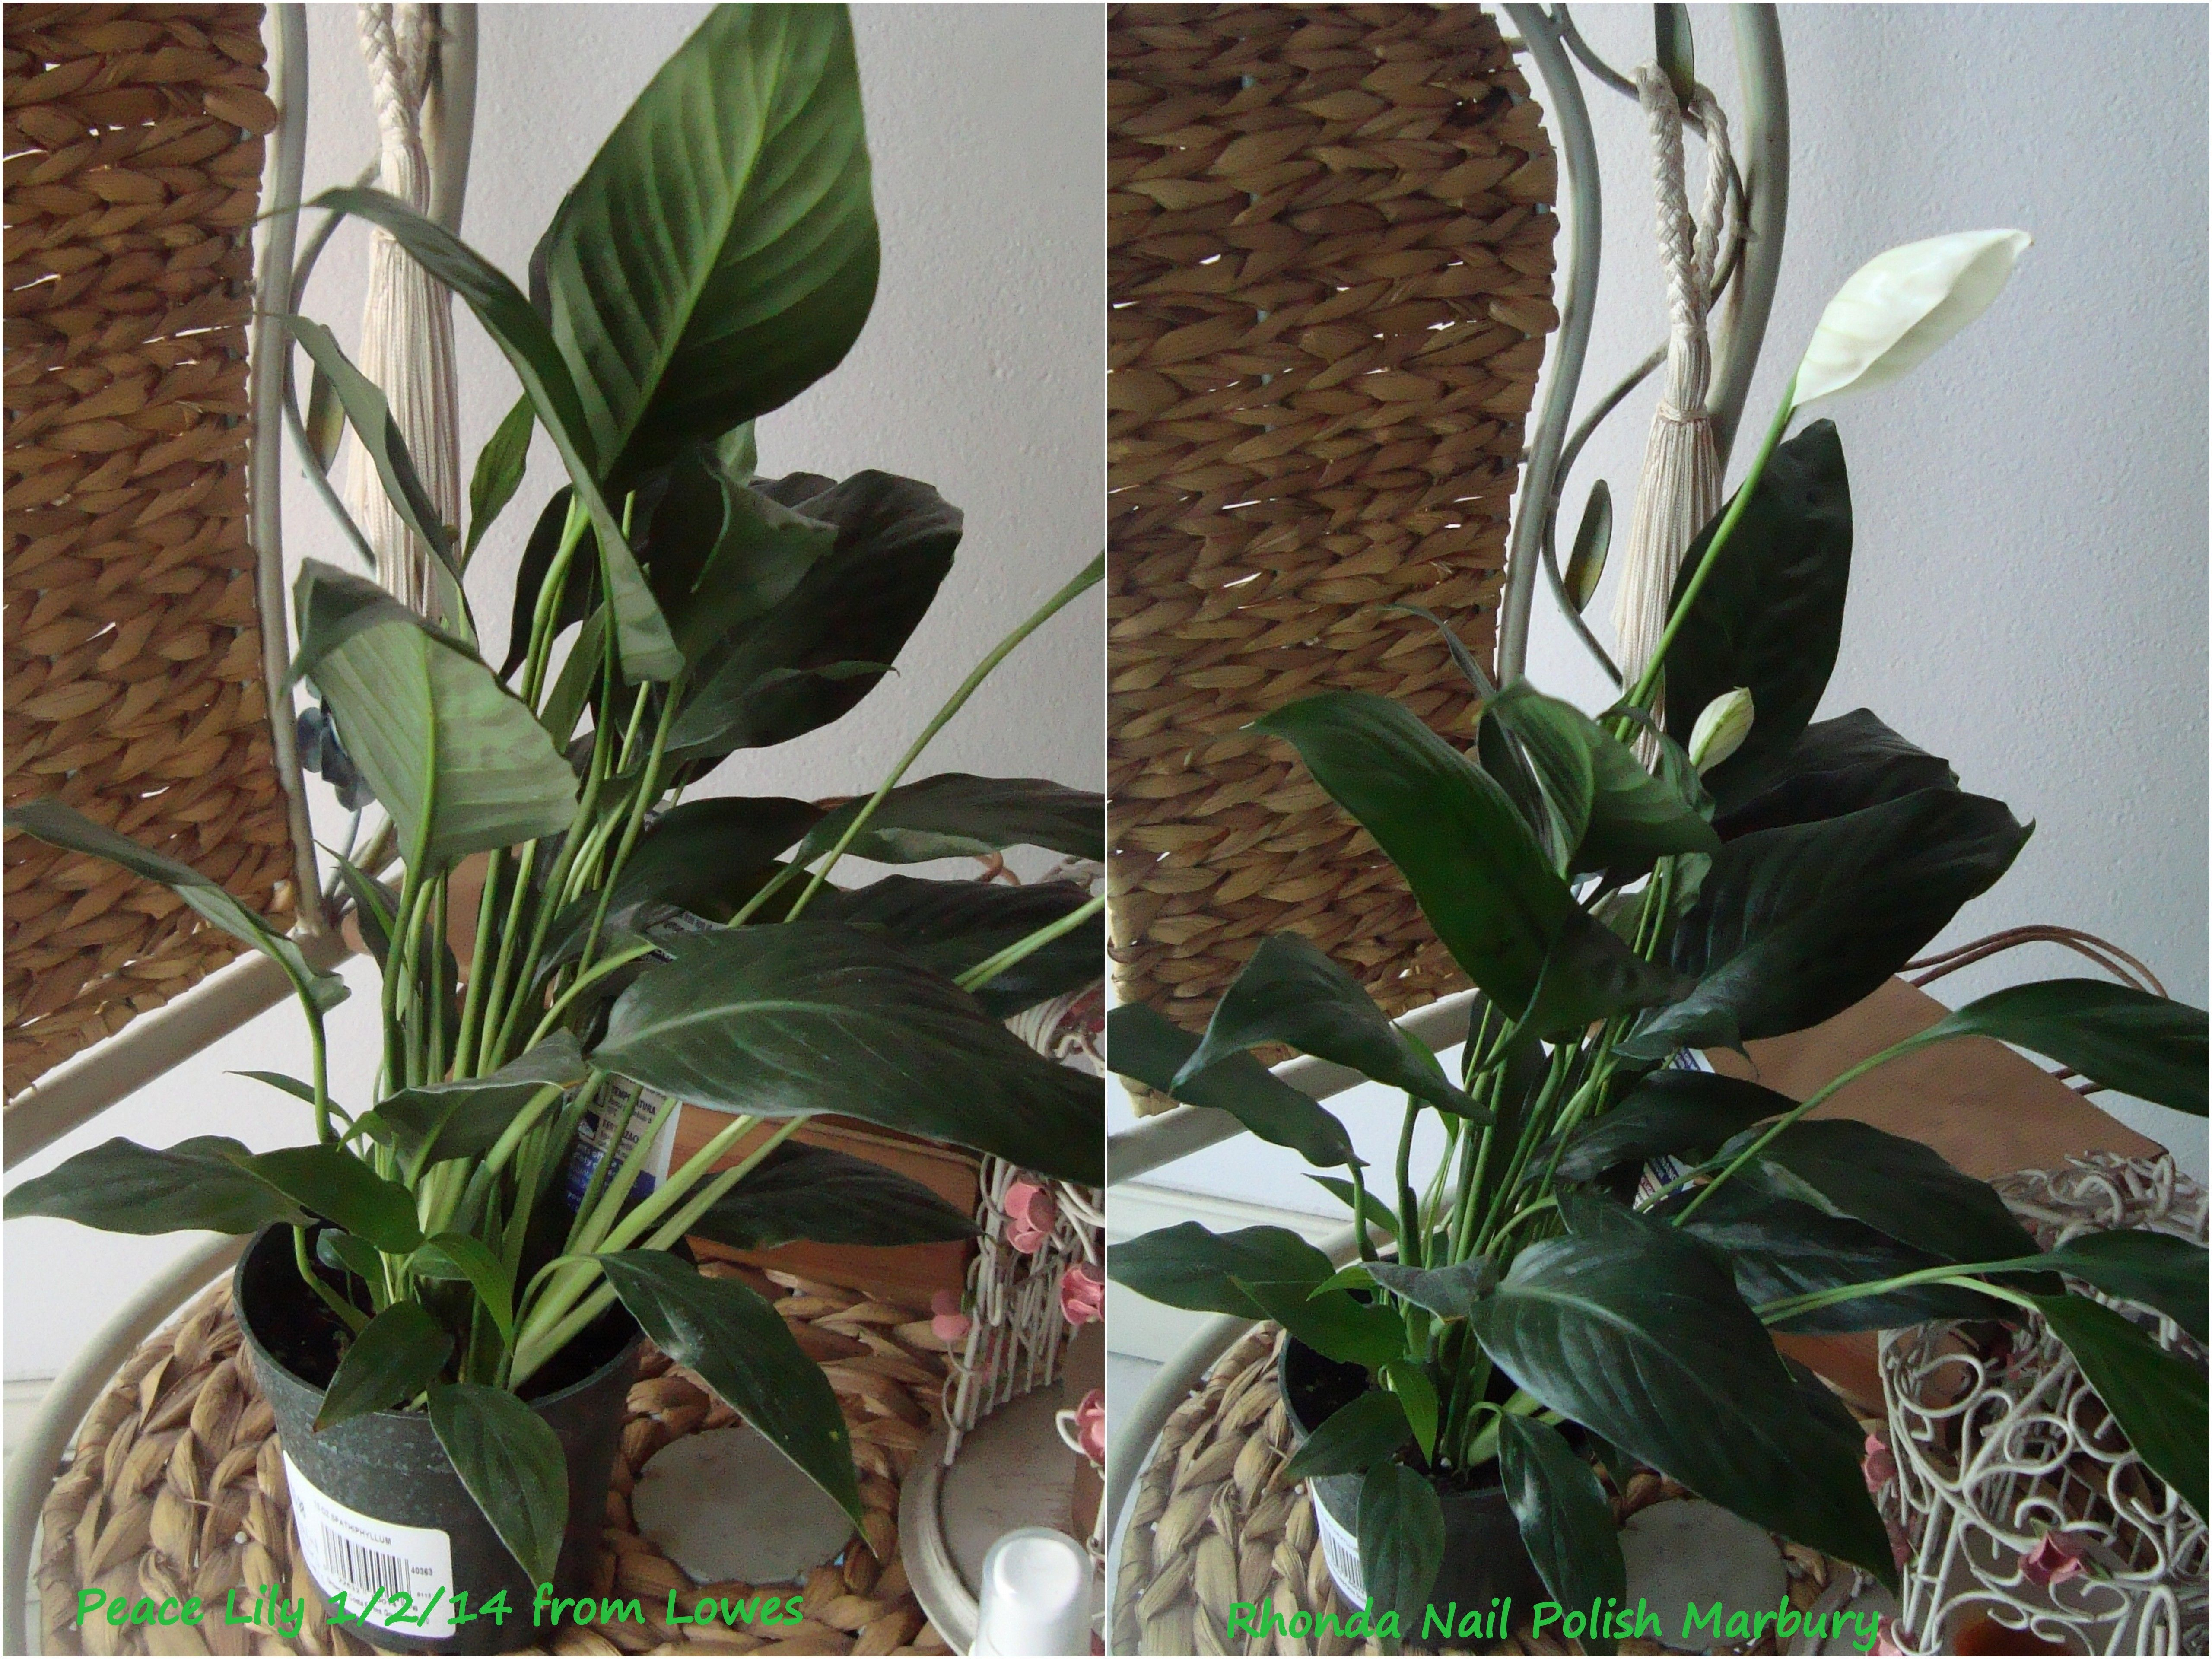 Peace lily spathiphyllum came with 4 bloomspurchase from peace lily spathiphyllum came with 4 bloomspurchase from lowes izmirmasajfo Choice Image